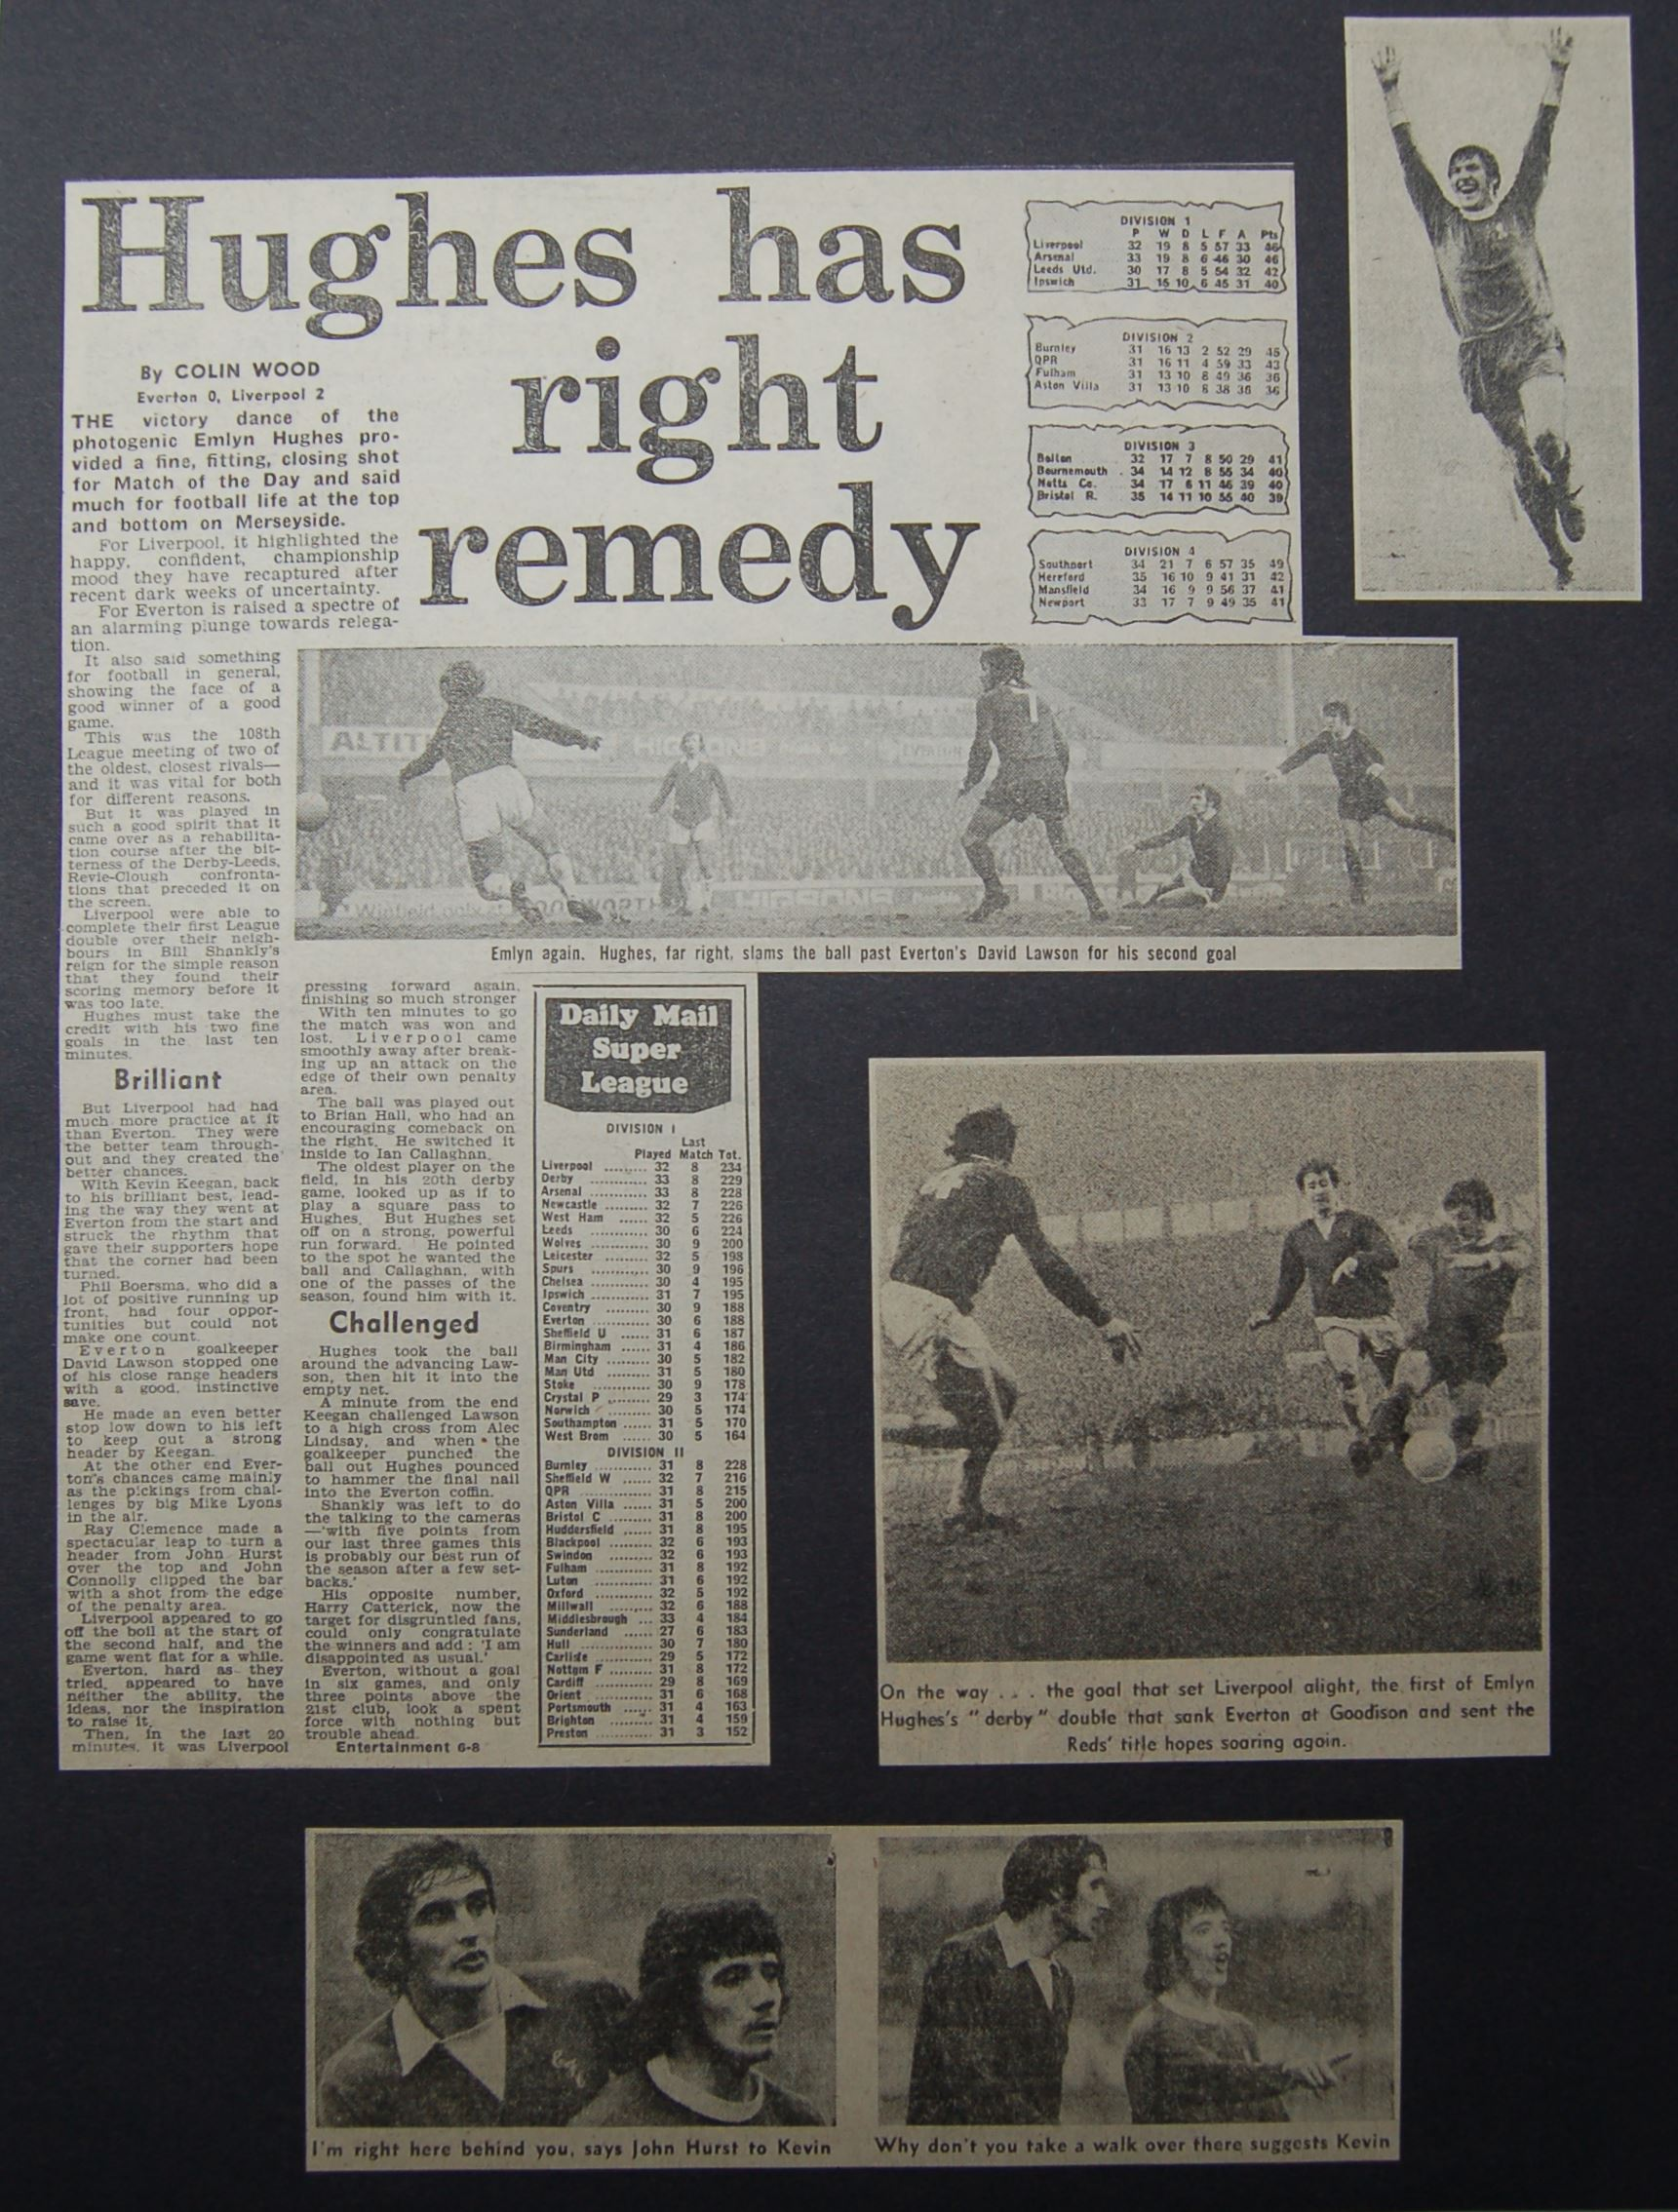 Hughes has right remedy - 3 March 1973